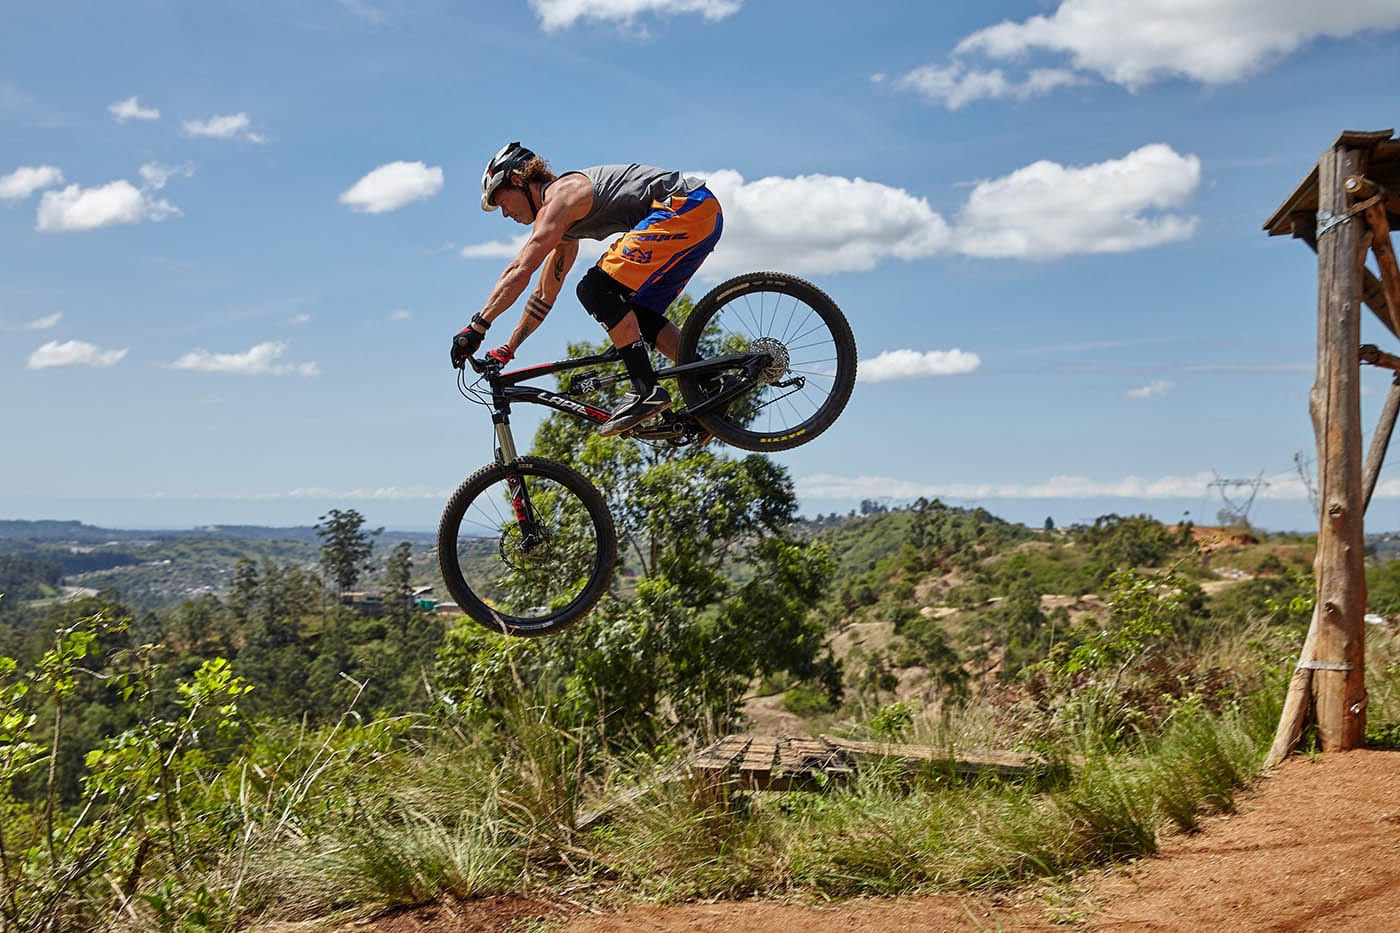 Howick and Karkloof Mountain Bike Trails in Midlands Meander